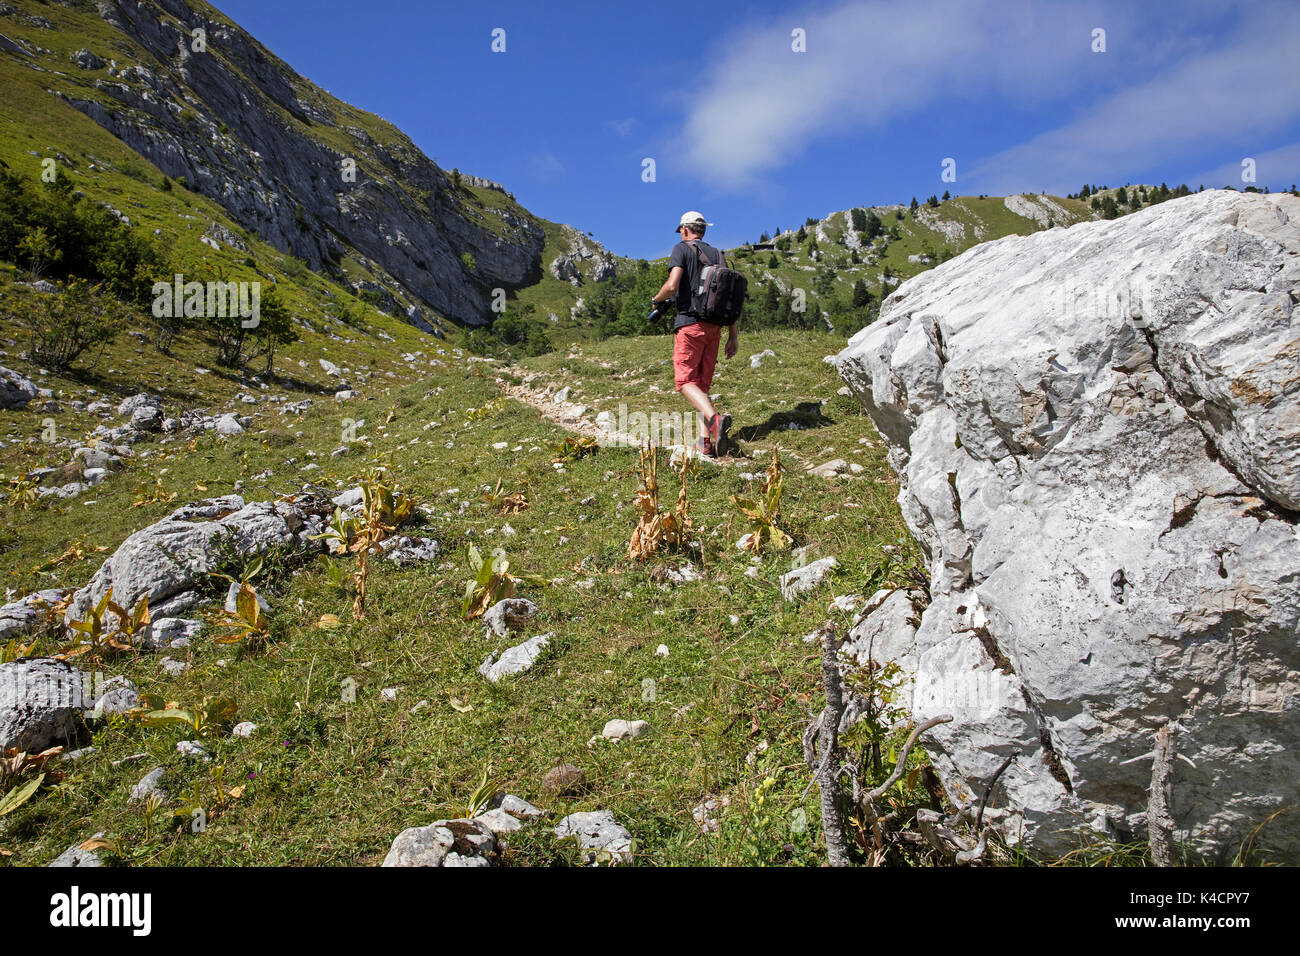 Mountain walker walking along hiking trail in the Jura at the French-Swiss border near Les Dappes and Les Rousses, Bourgogne-Franche-Comté, France - Stock Image